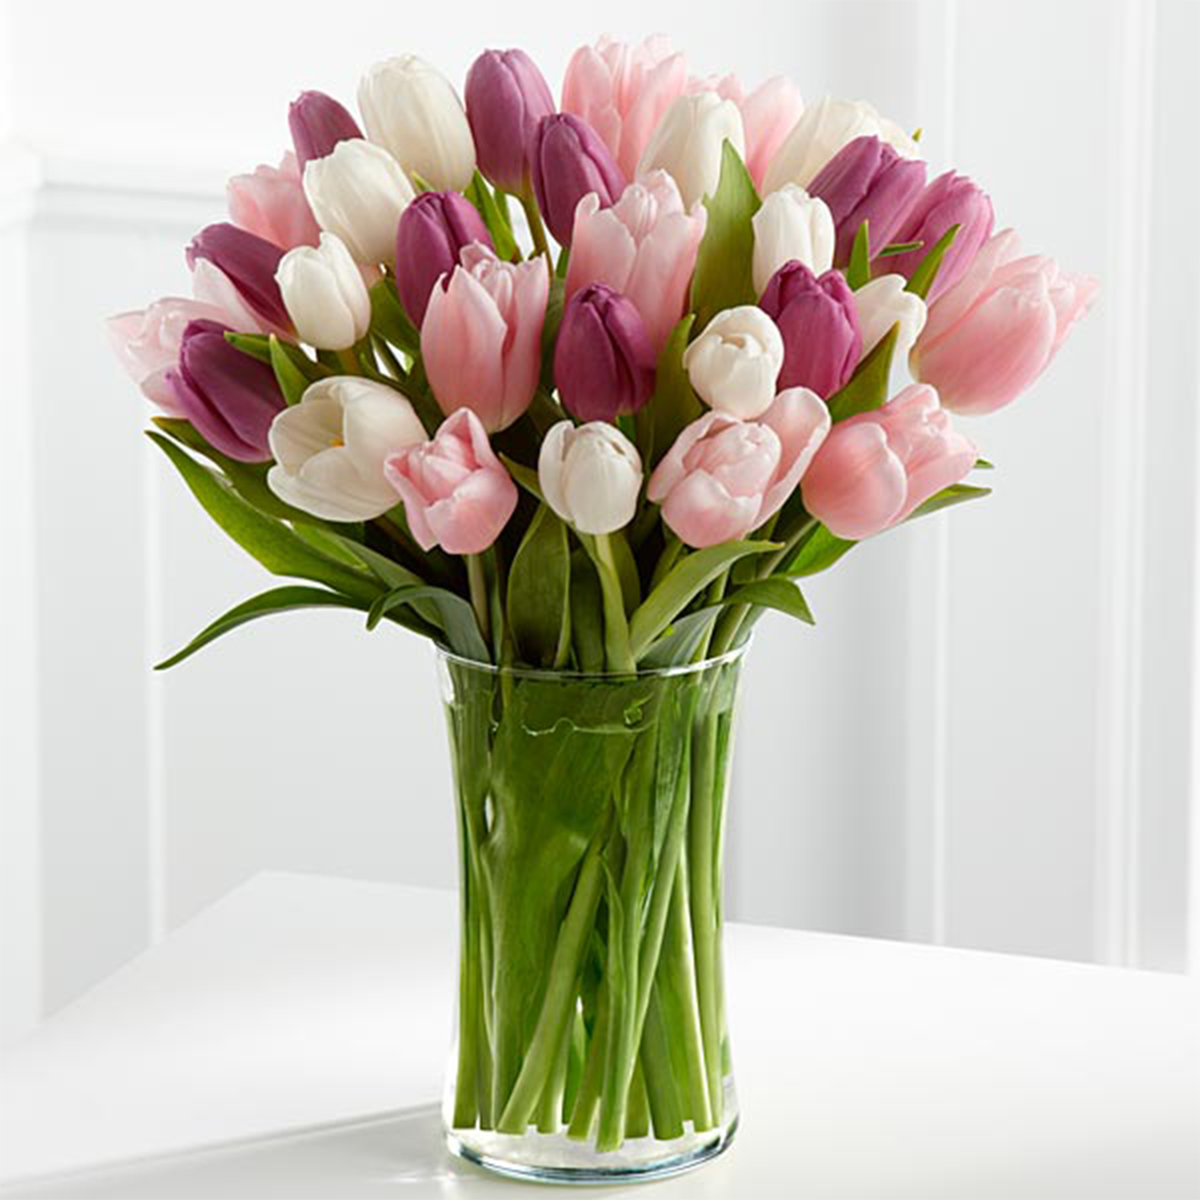 Clear glass vase holding pink, white, and purple tulips photo